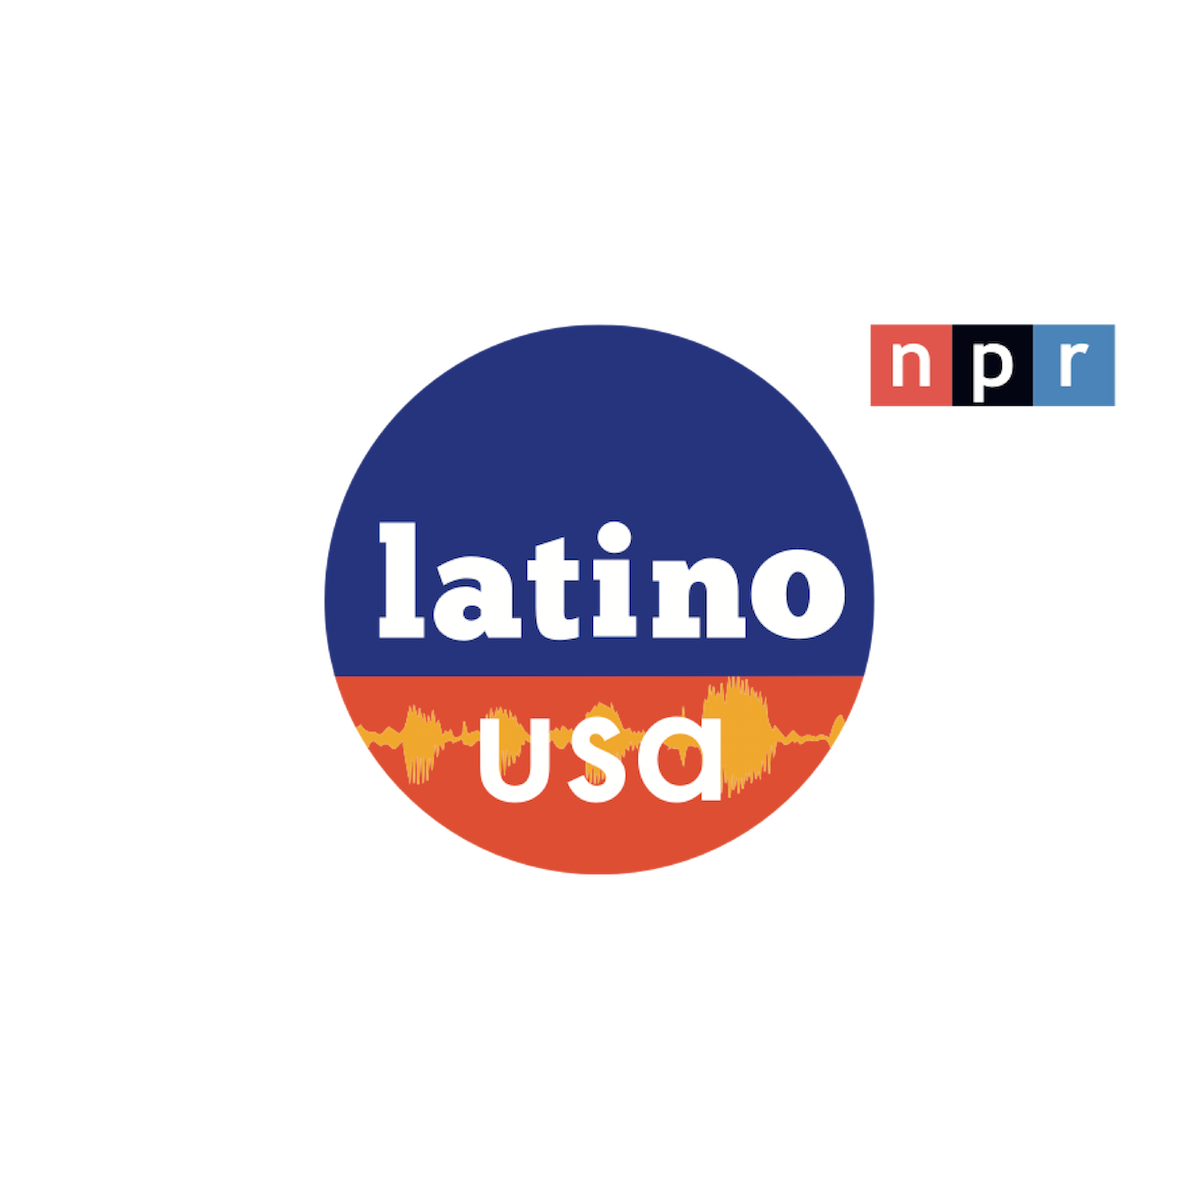 Why Some Central Americans Are Saying No To American Aid for NPR's Latino USA -